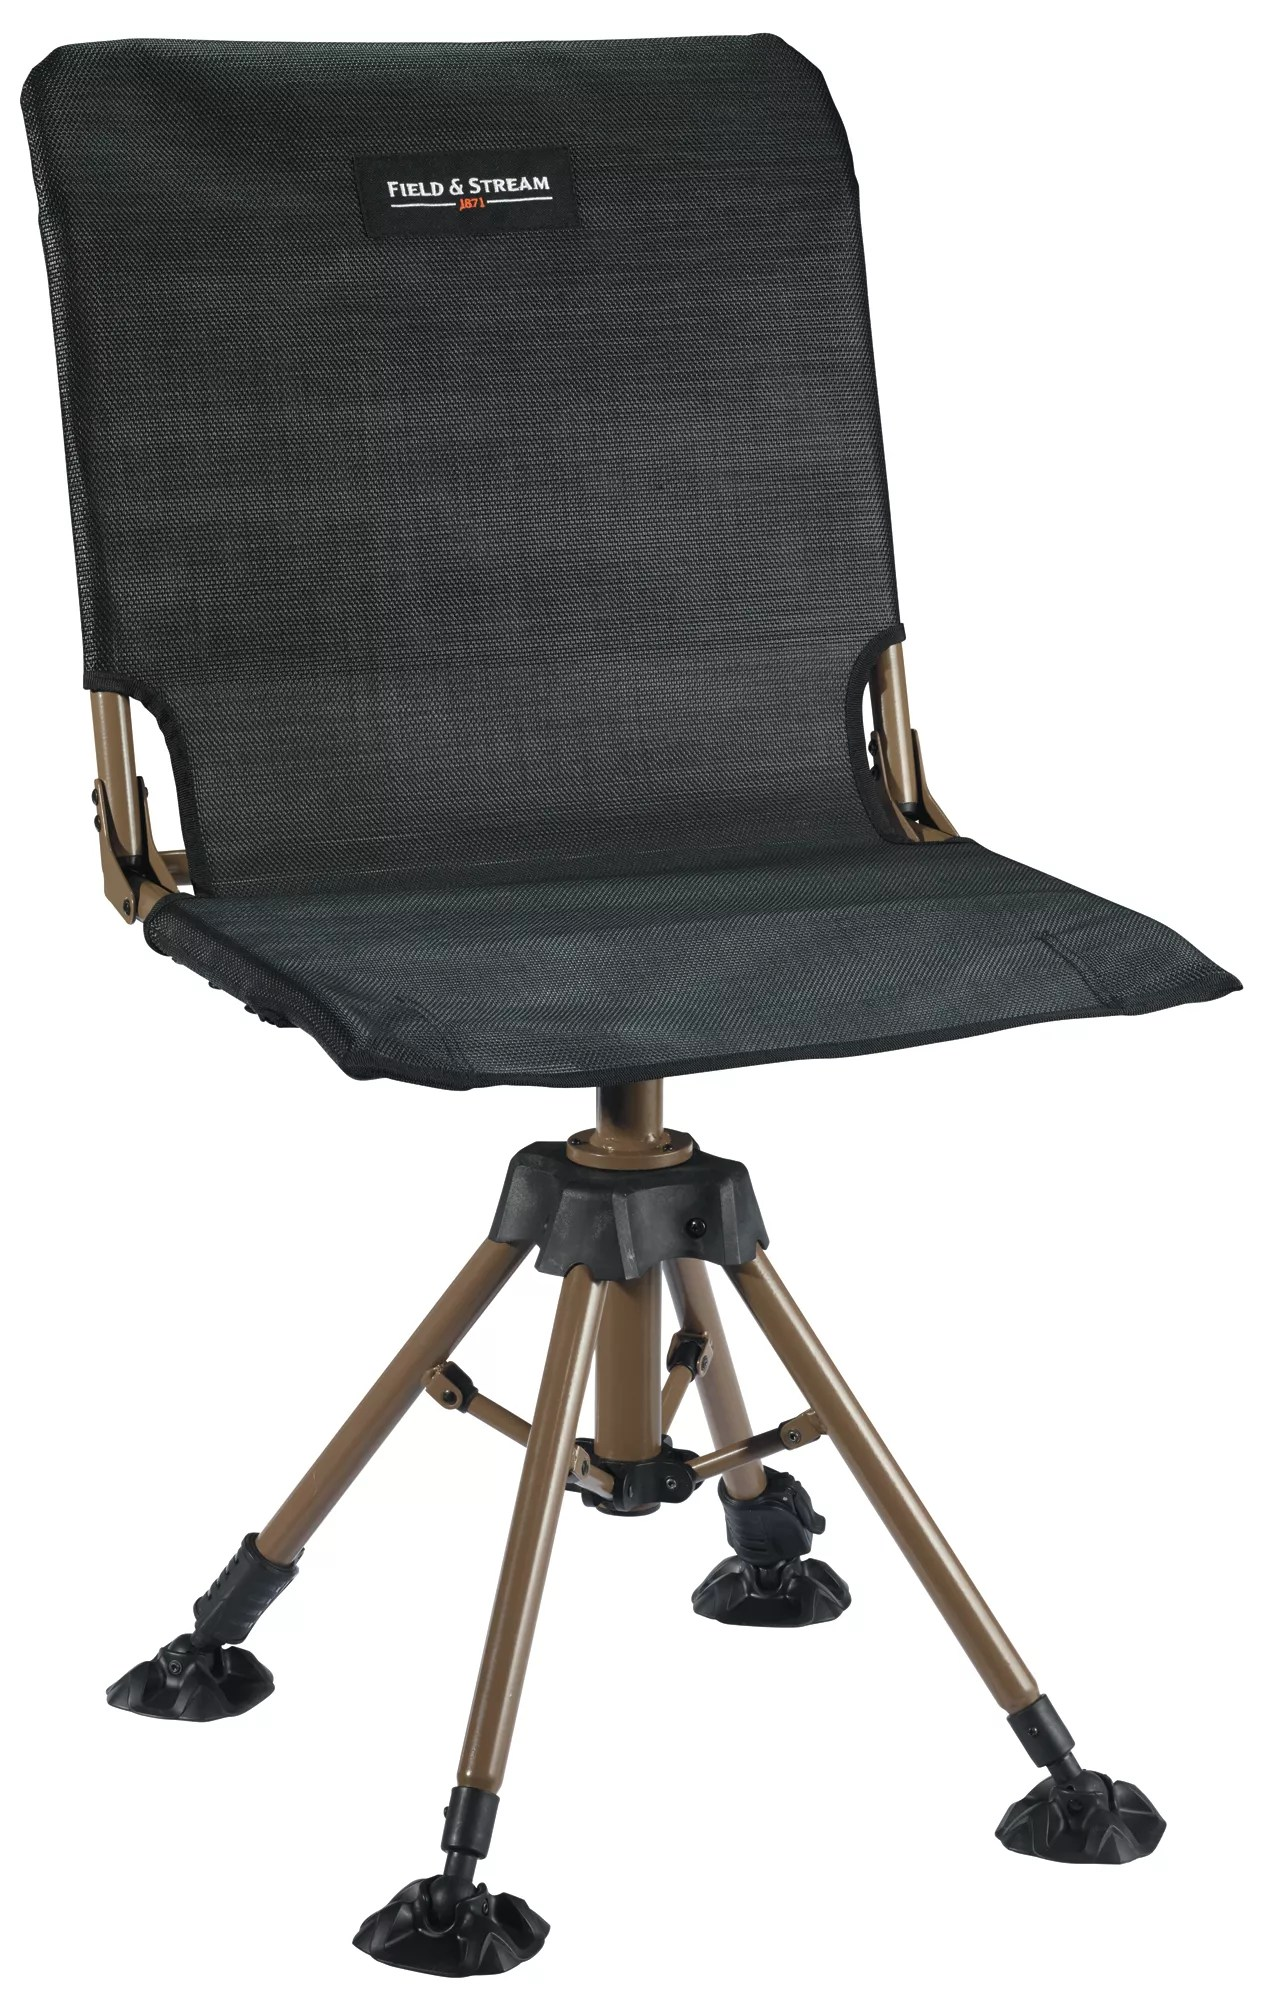 swivel hunting chair reviews kids table and set field stream rotating blind